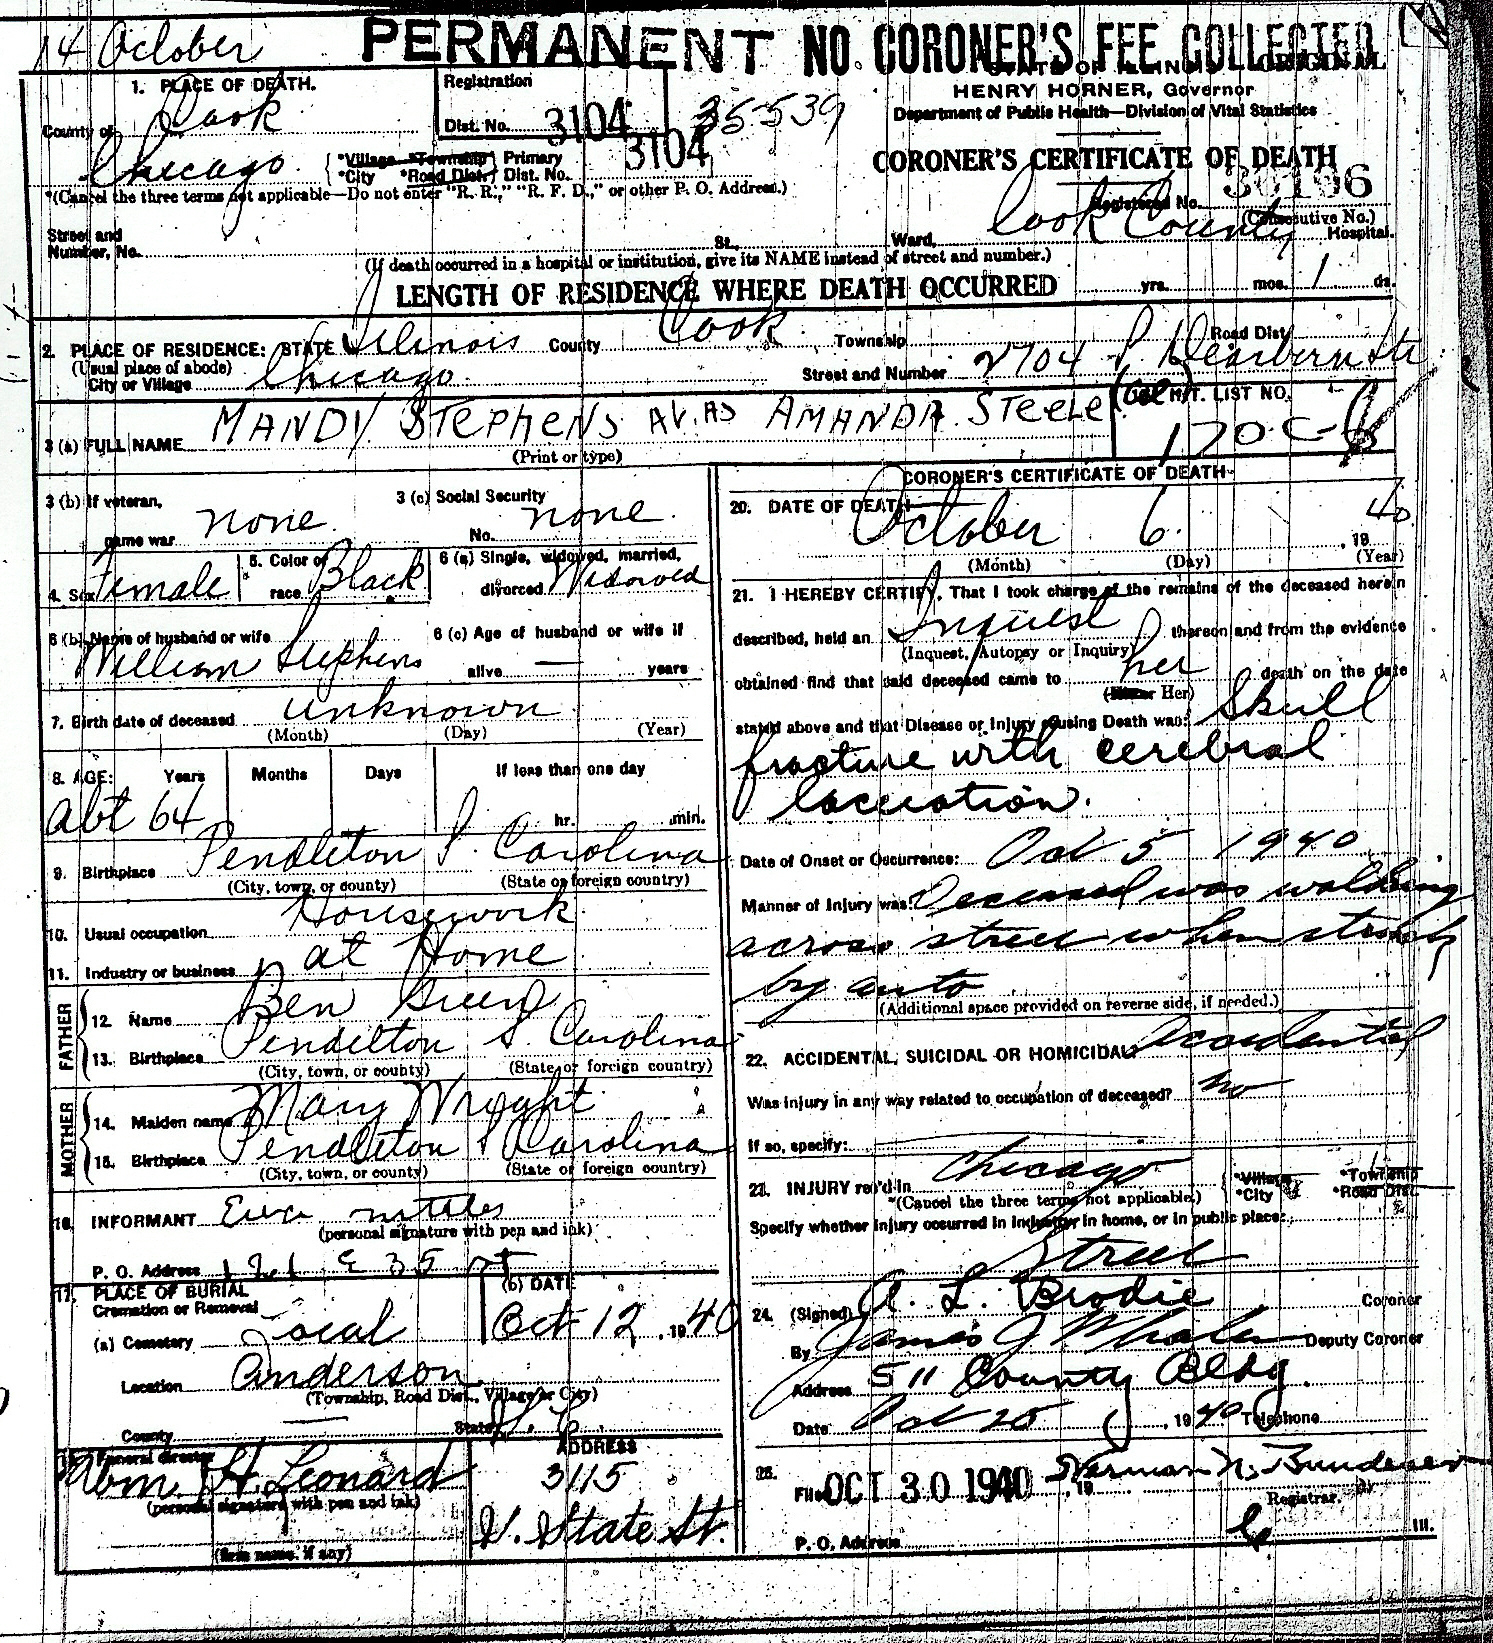 Illinois death certificate transcriptions mandy stephens 1betcityfo Image collections